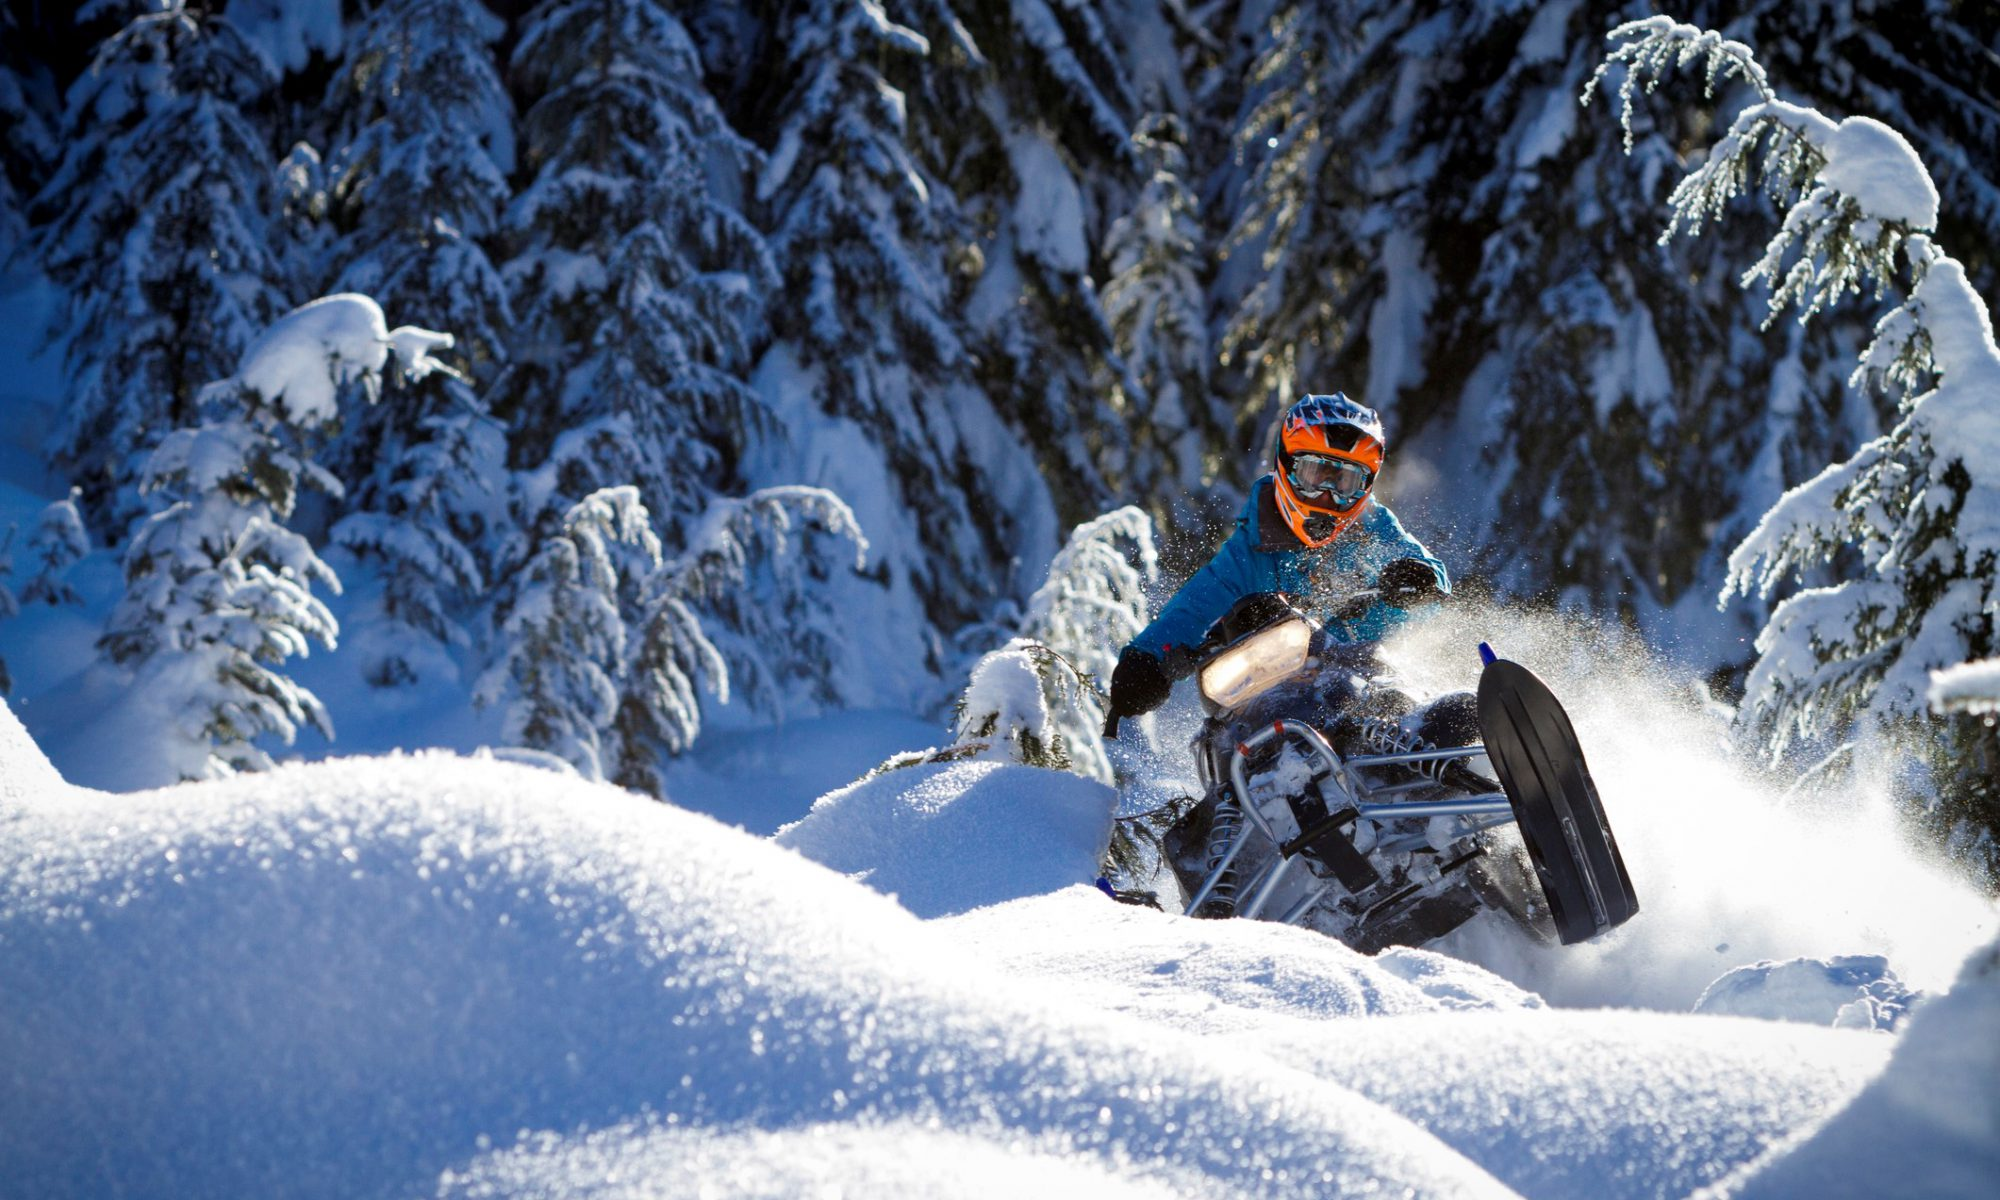 Snowmobile Maintenance Tips Before Hitting The Powder